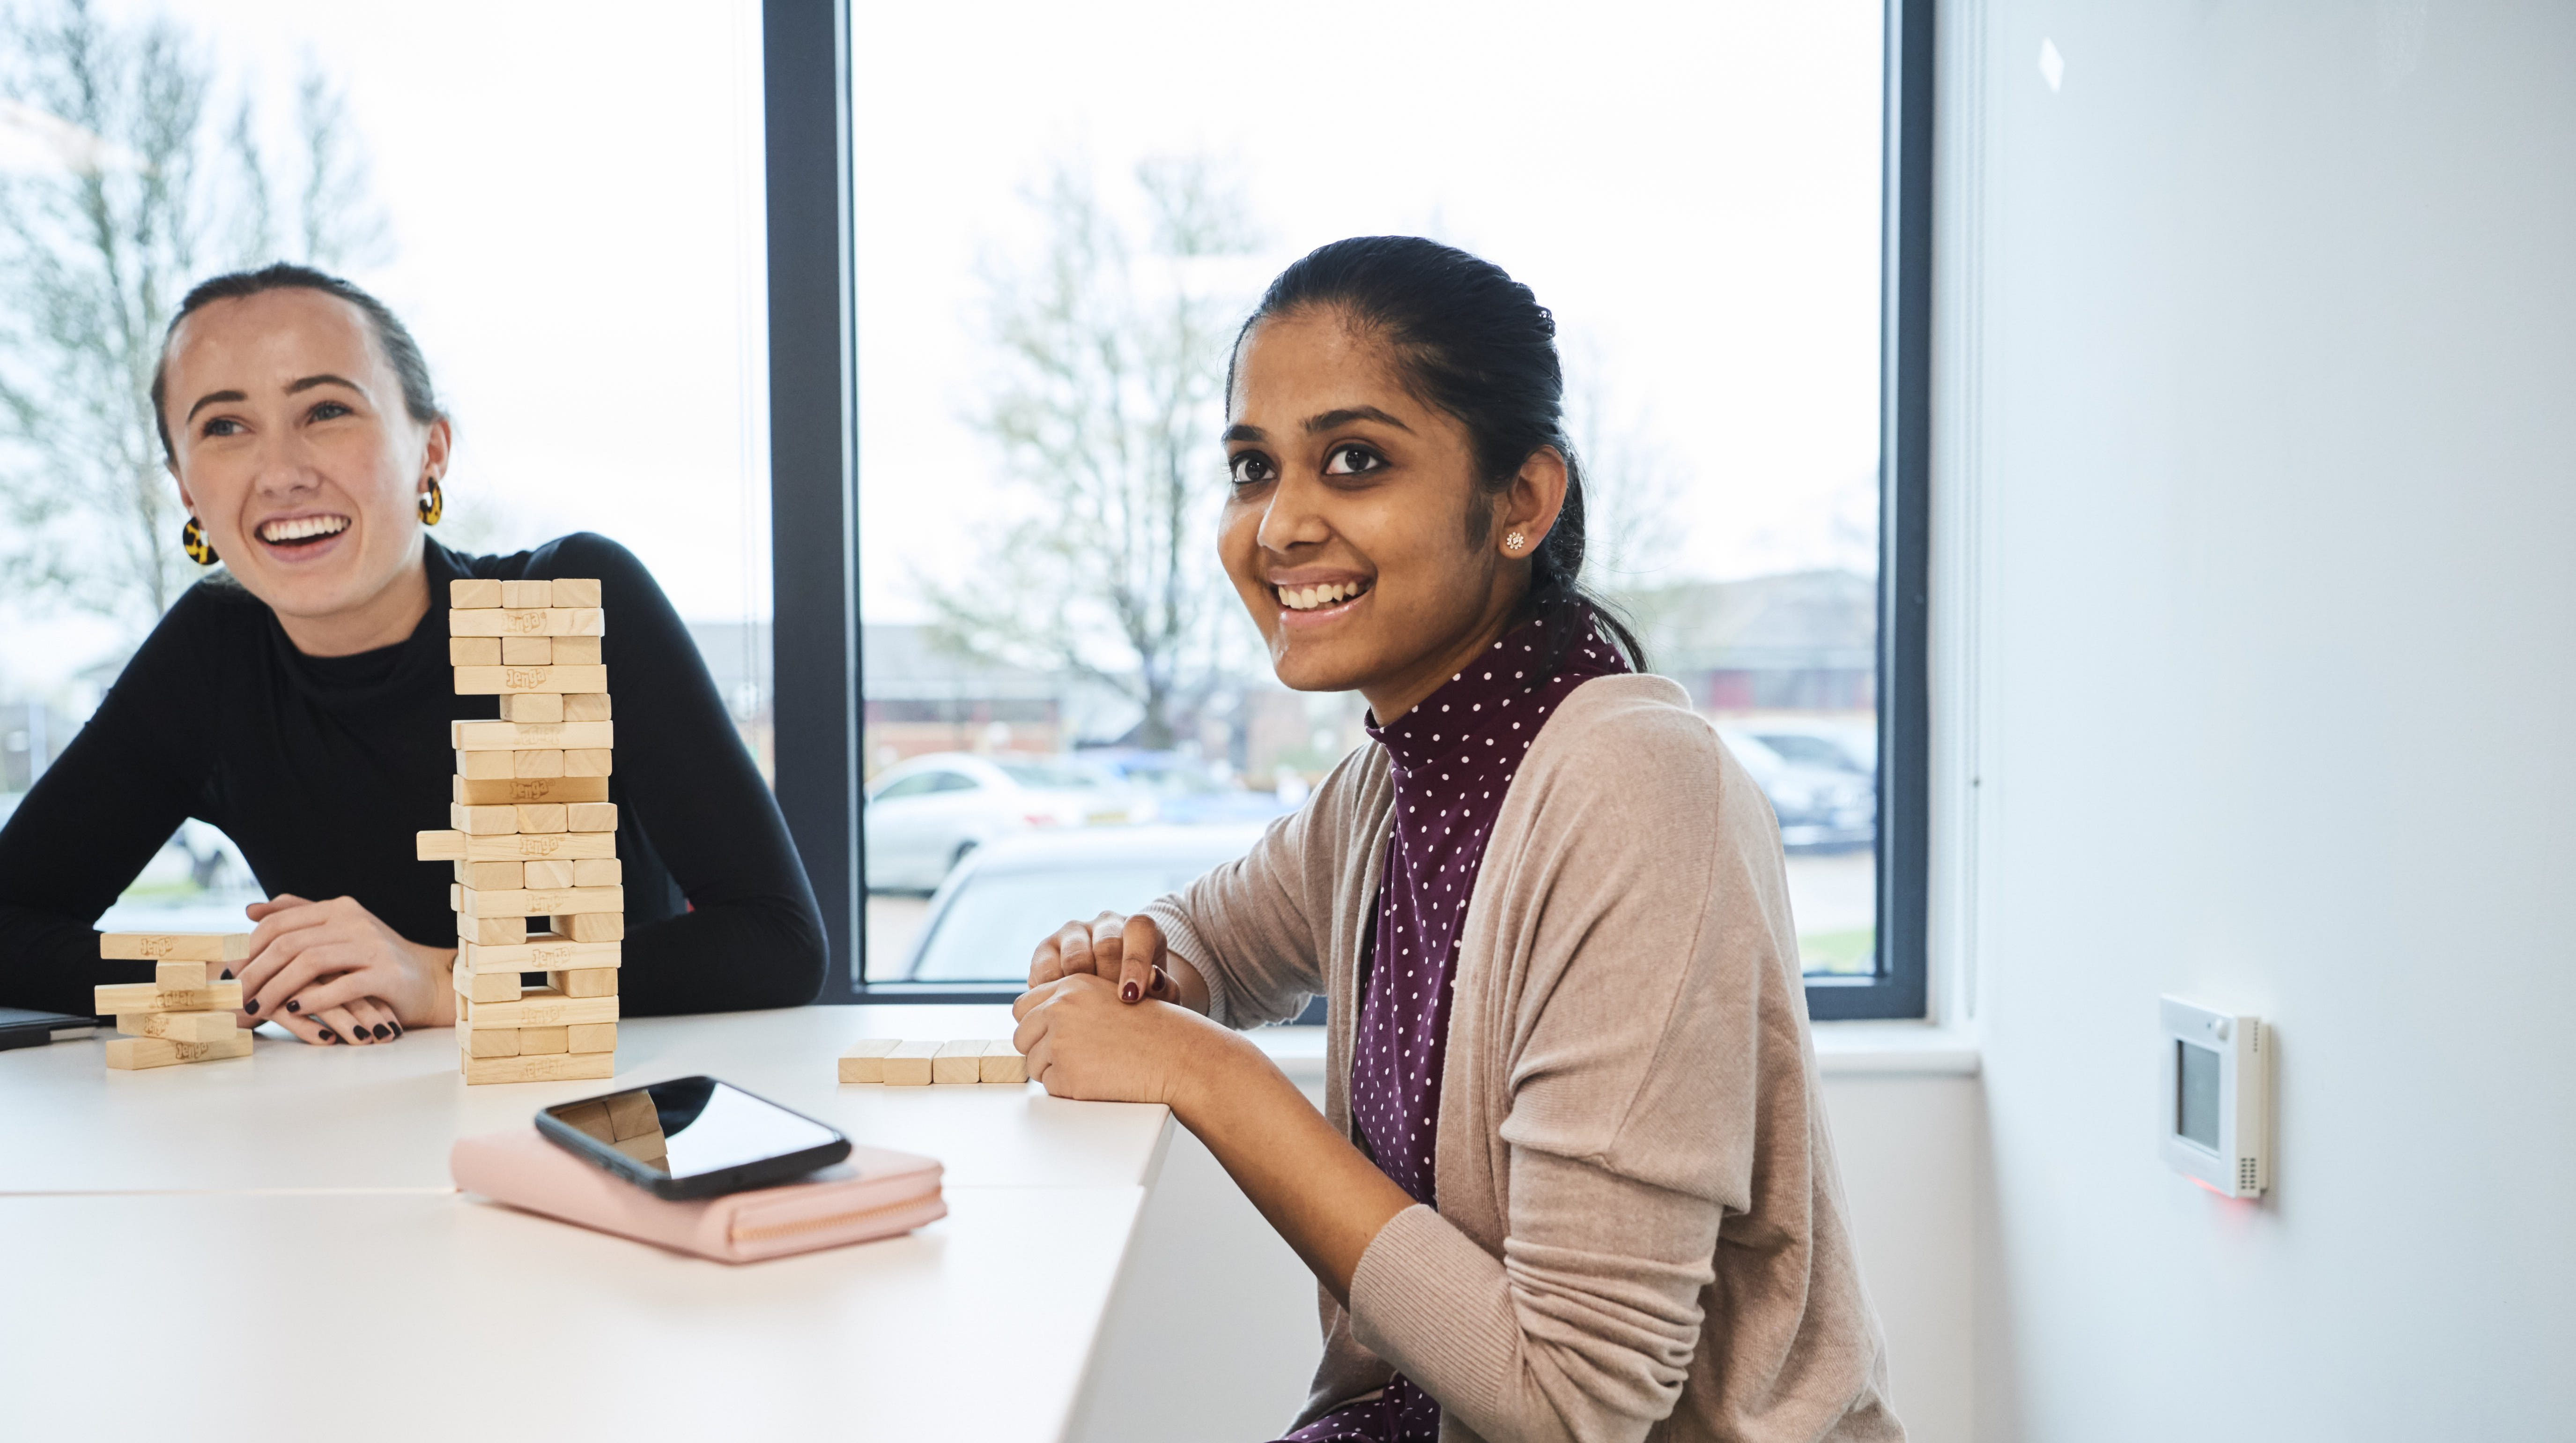 Two female co-workers sitting at a table playing jenga